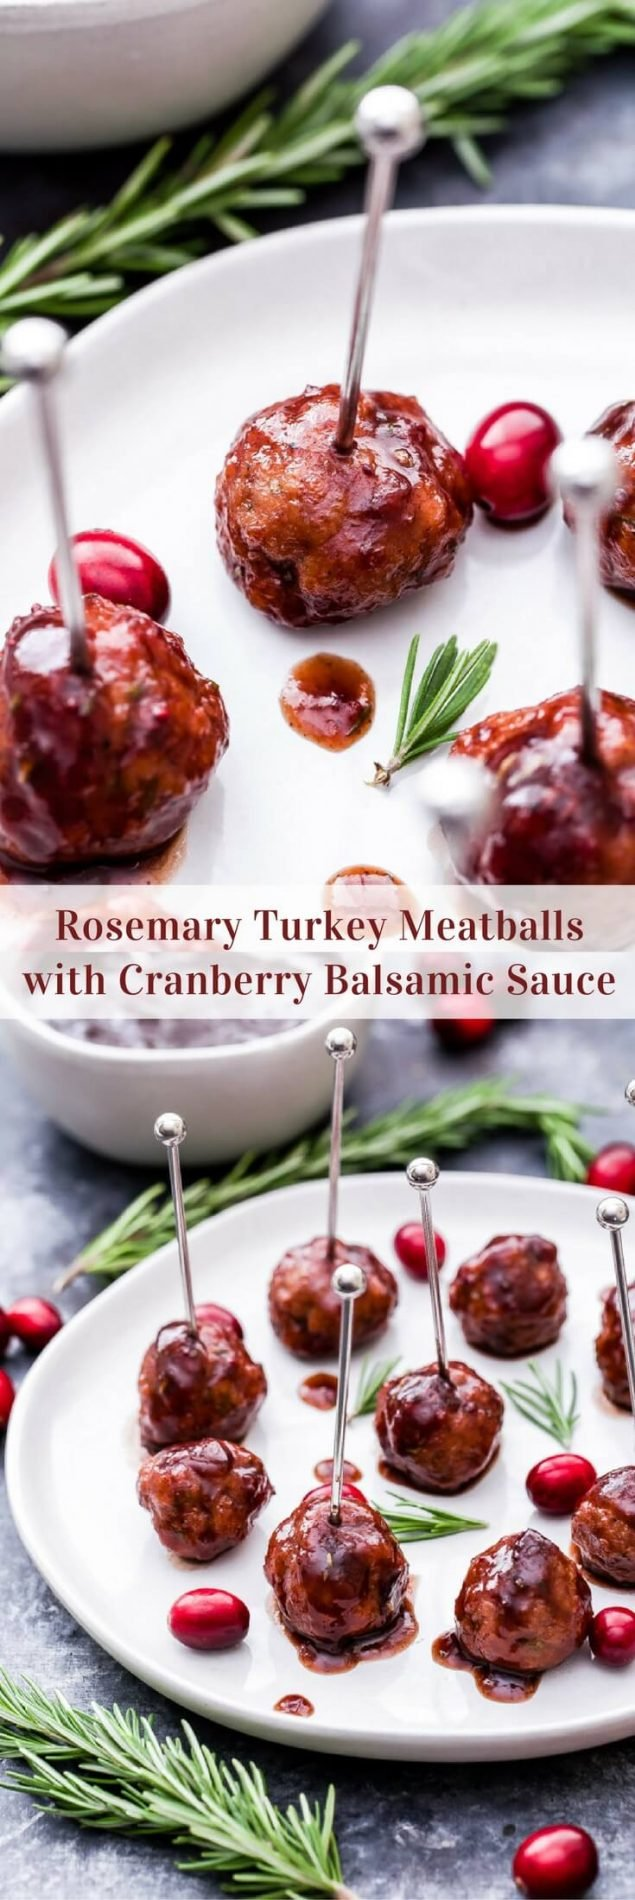 Every party needs a good meatball and these Rosemary Turkey Meatballs with Cranberry Balsamic Sauce are sure to be a crowd pleaser this holiday season! #meatballs #appetizer #turkey #rosemary #cranberrysauce #glutenfree #christmas #newyearseve